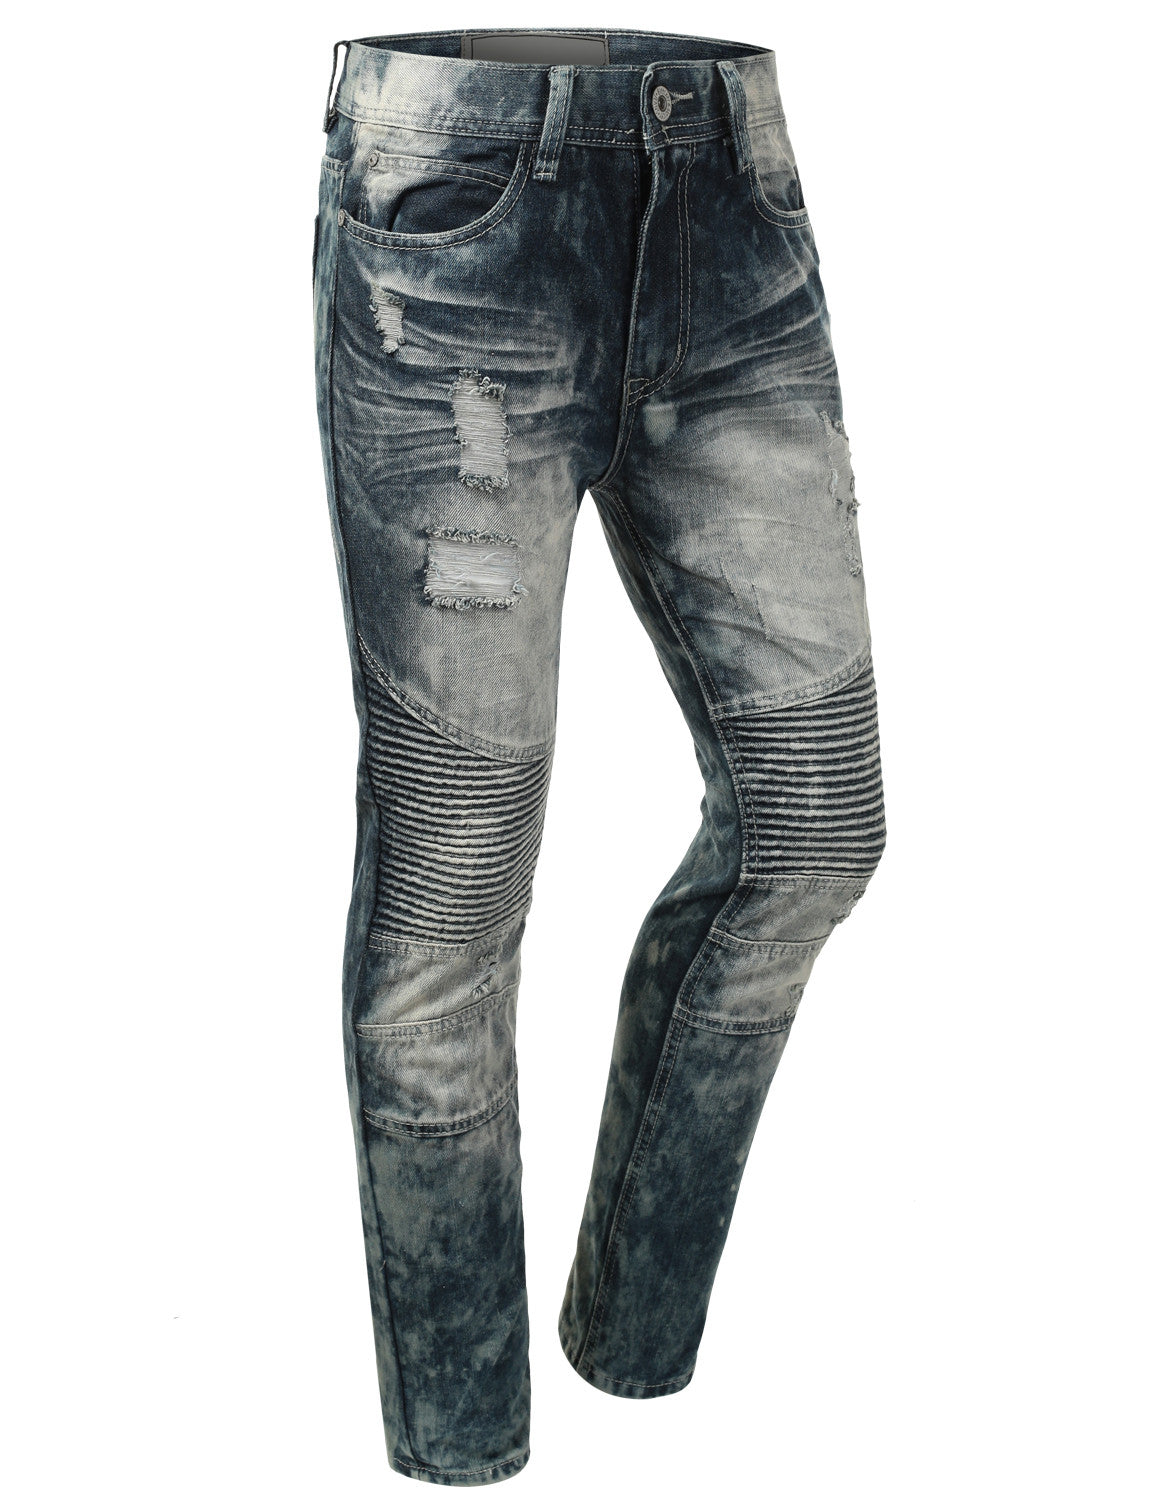 Distressed Rib Biker Jean- Slim Taper Fit - URBANCREWS - 7